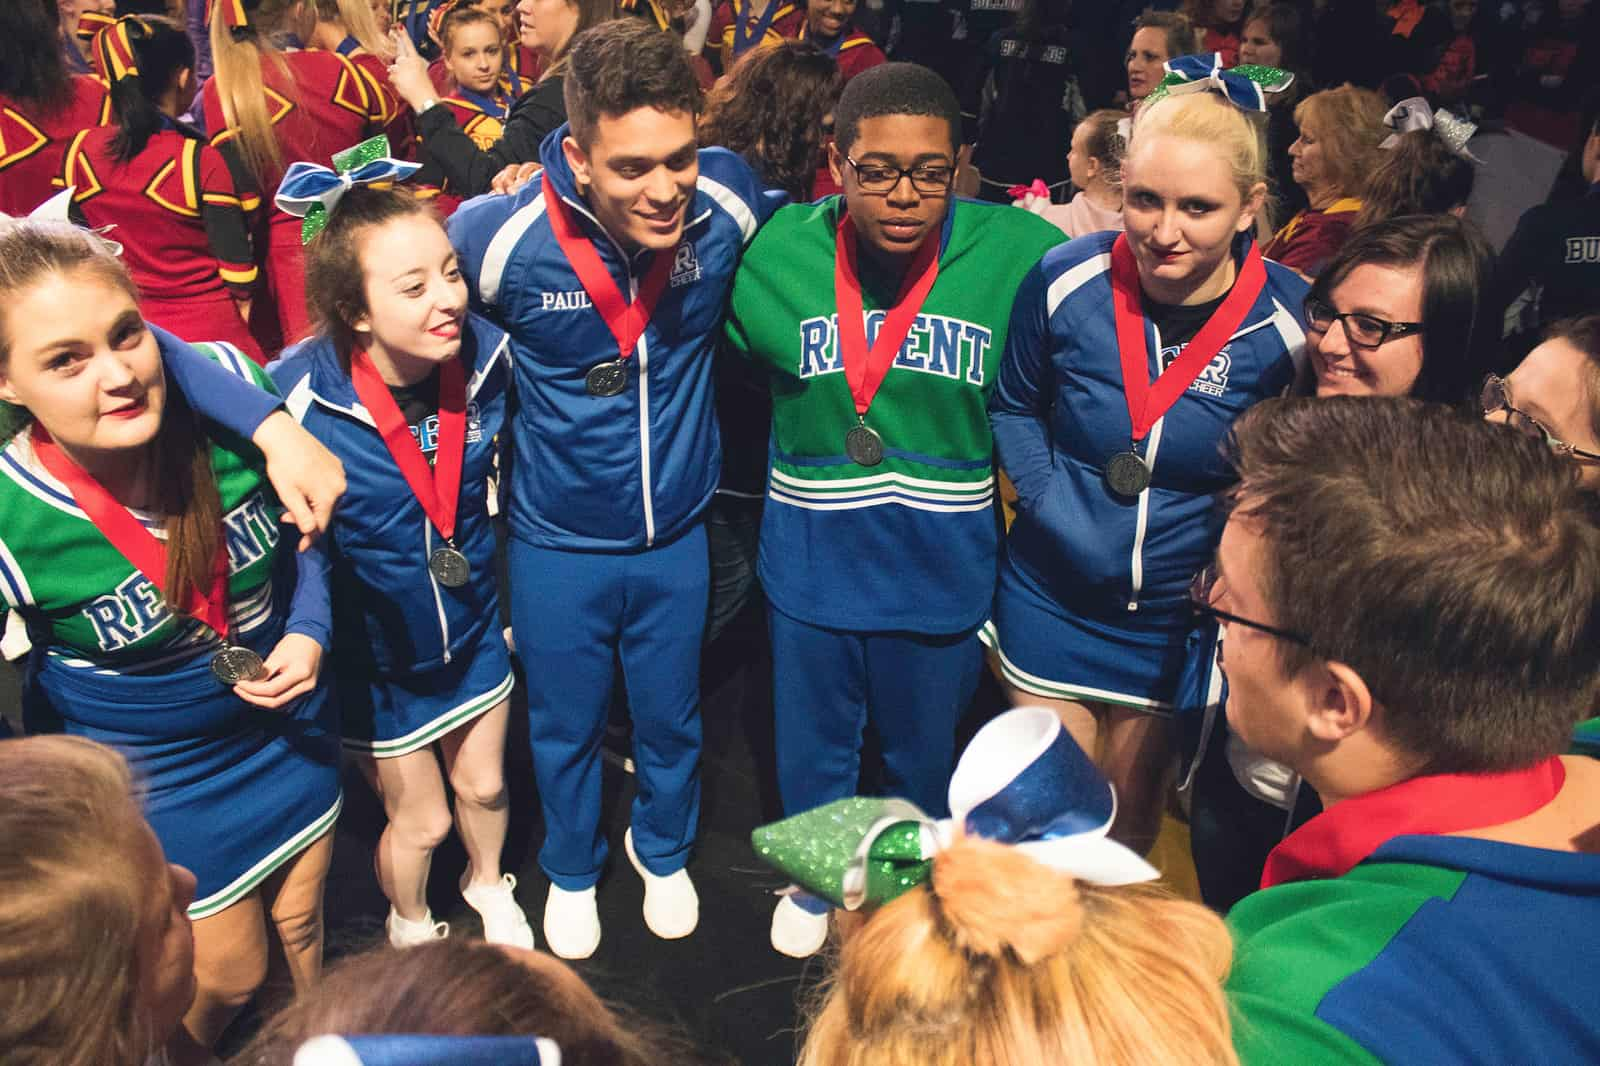 Regent Royals Cheerleaders won second place at the 2018 Christian Cheerleaders of America (CCA) National Competition.